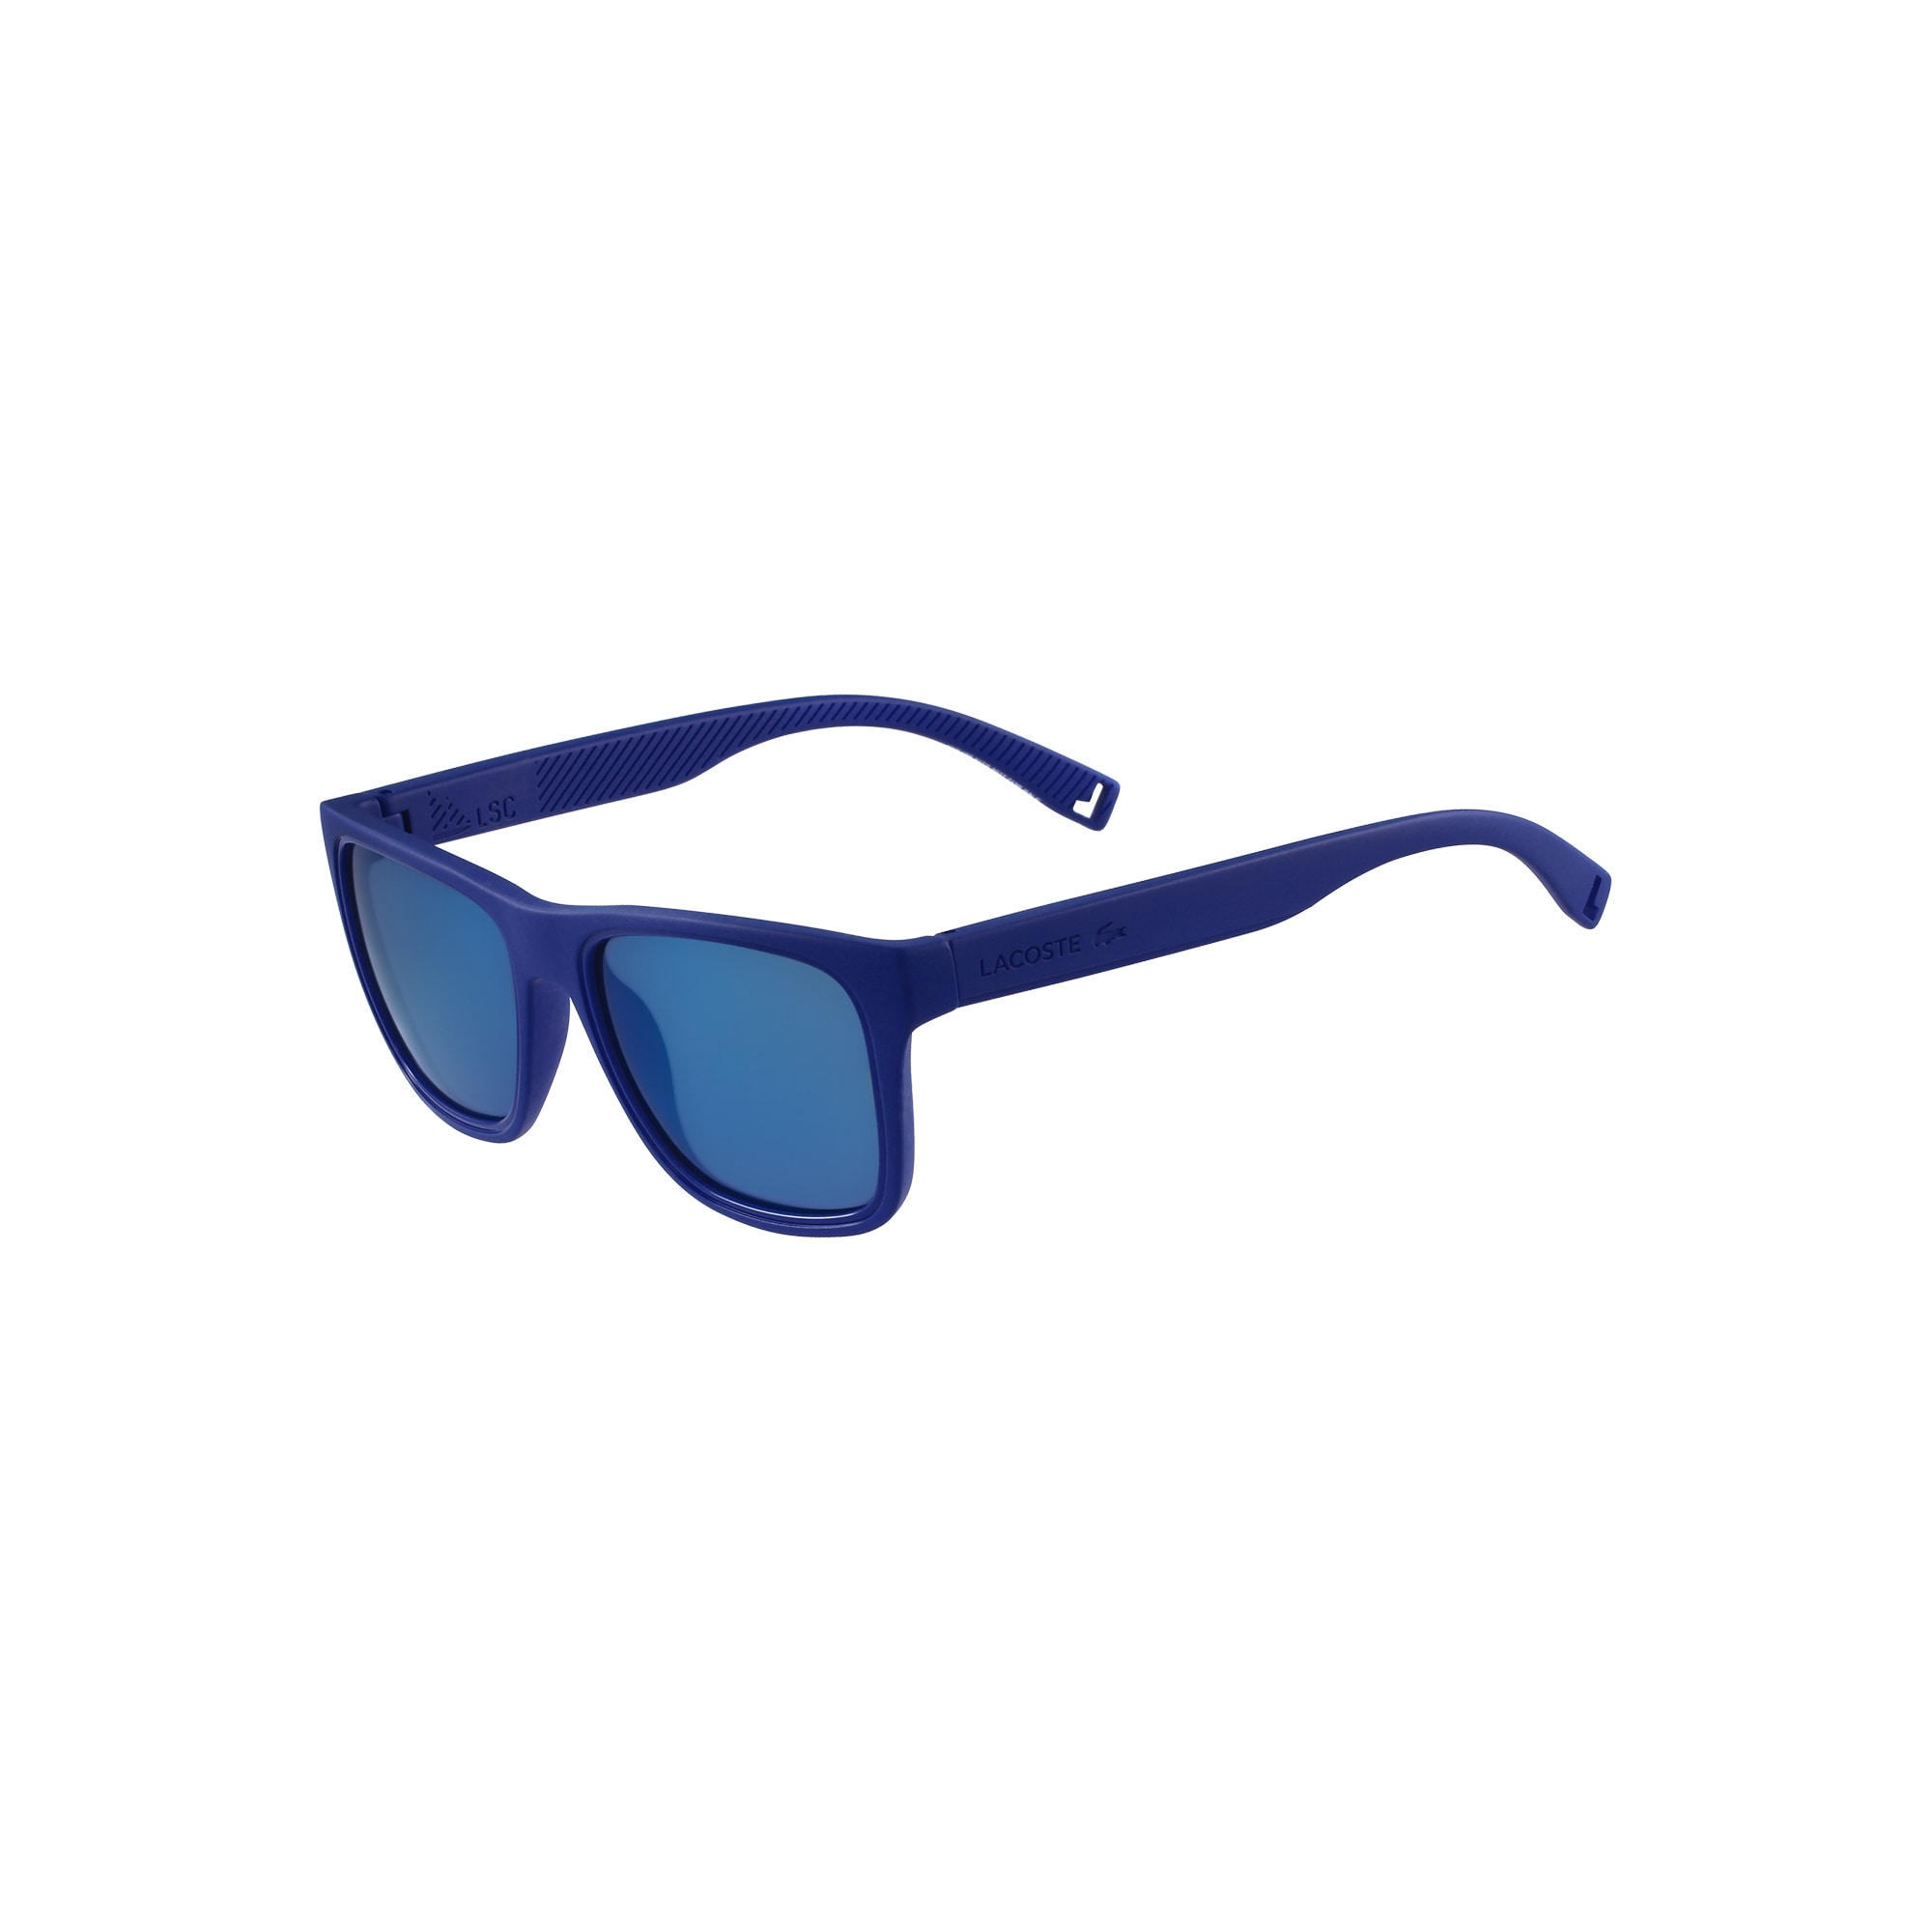 3e532ce09b Men's Sunglasses | Accessories | LACOSTE